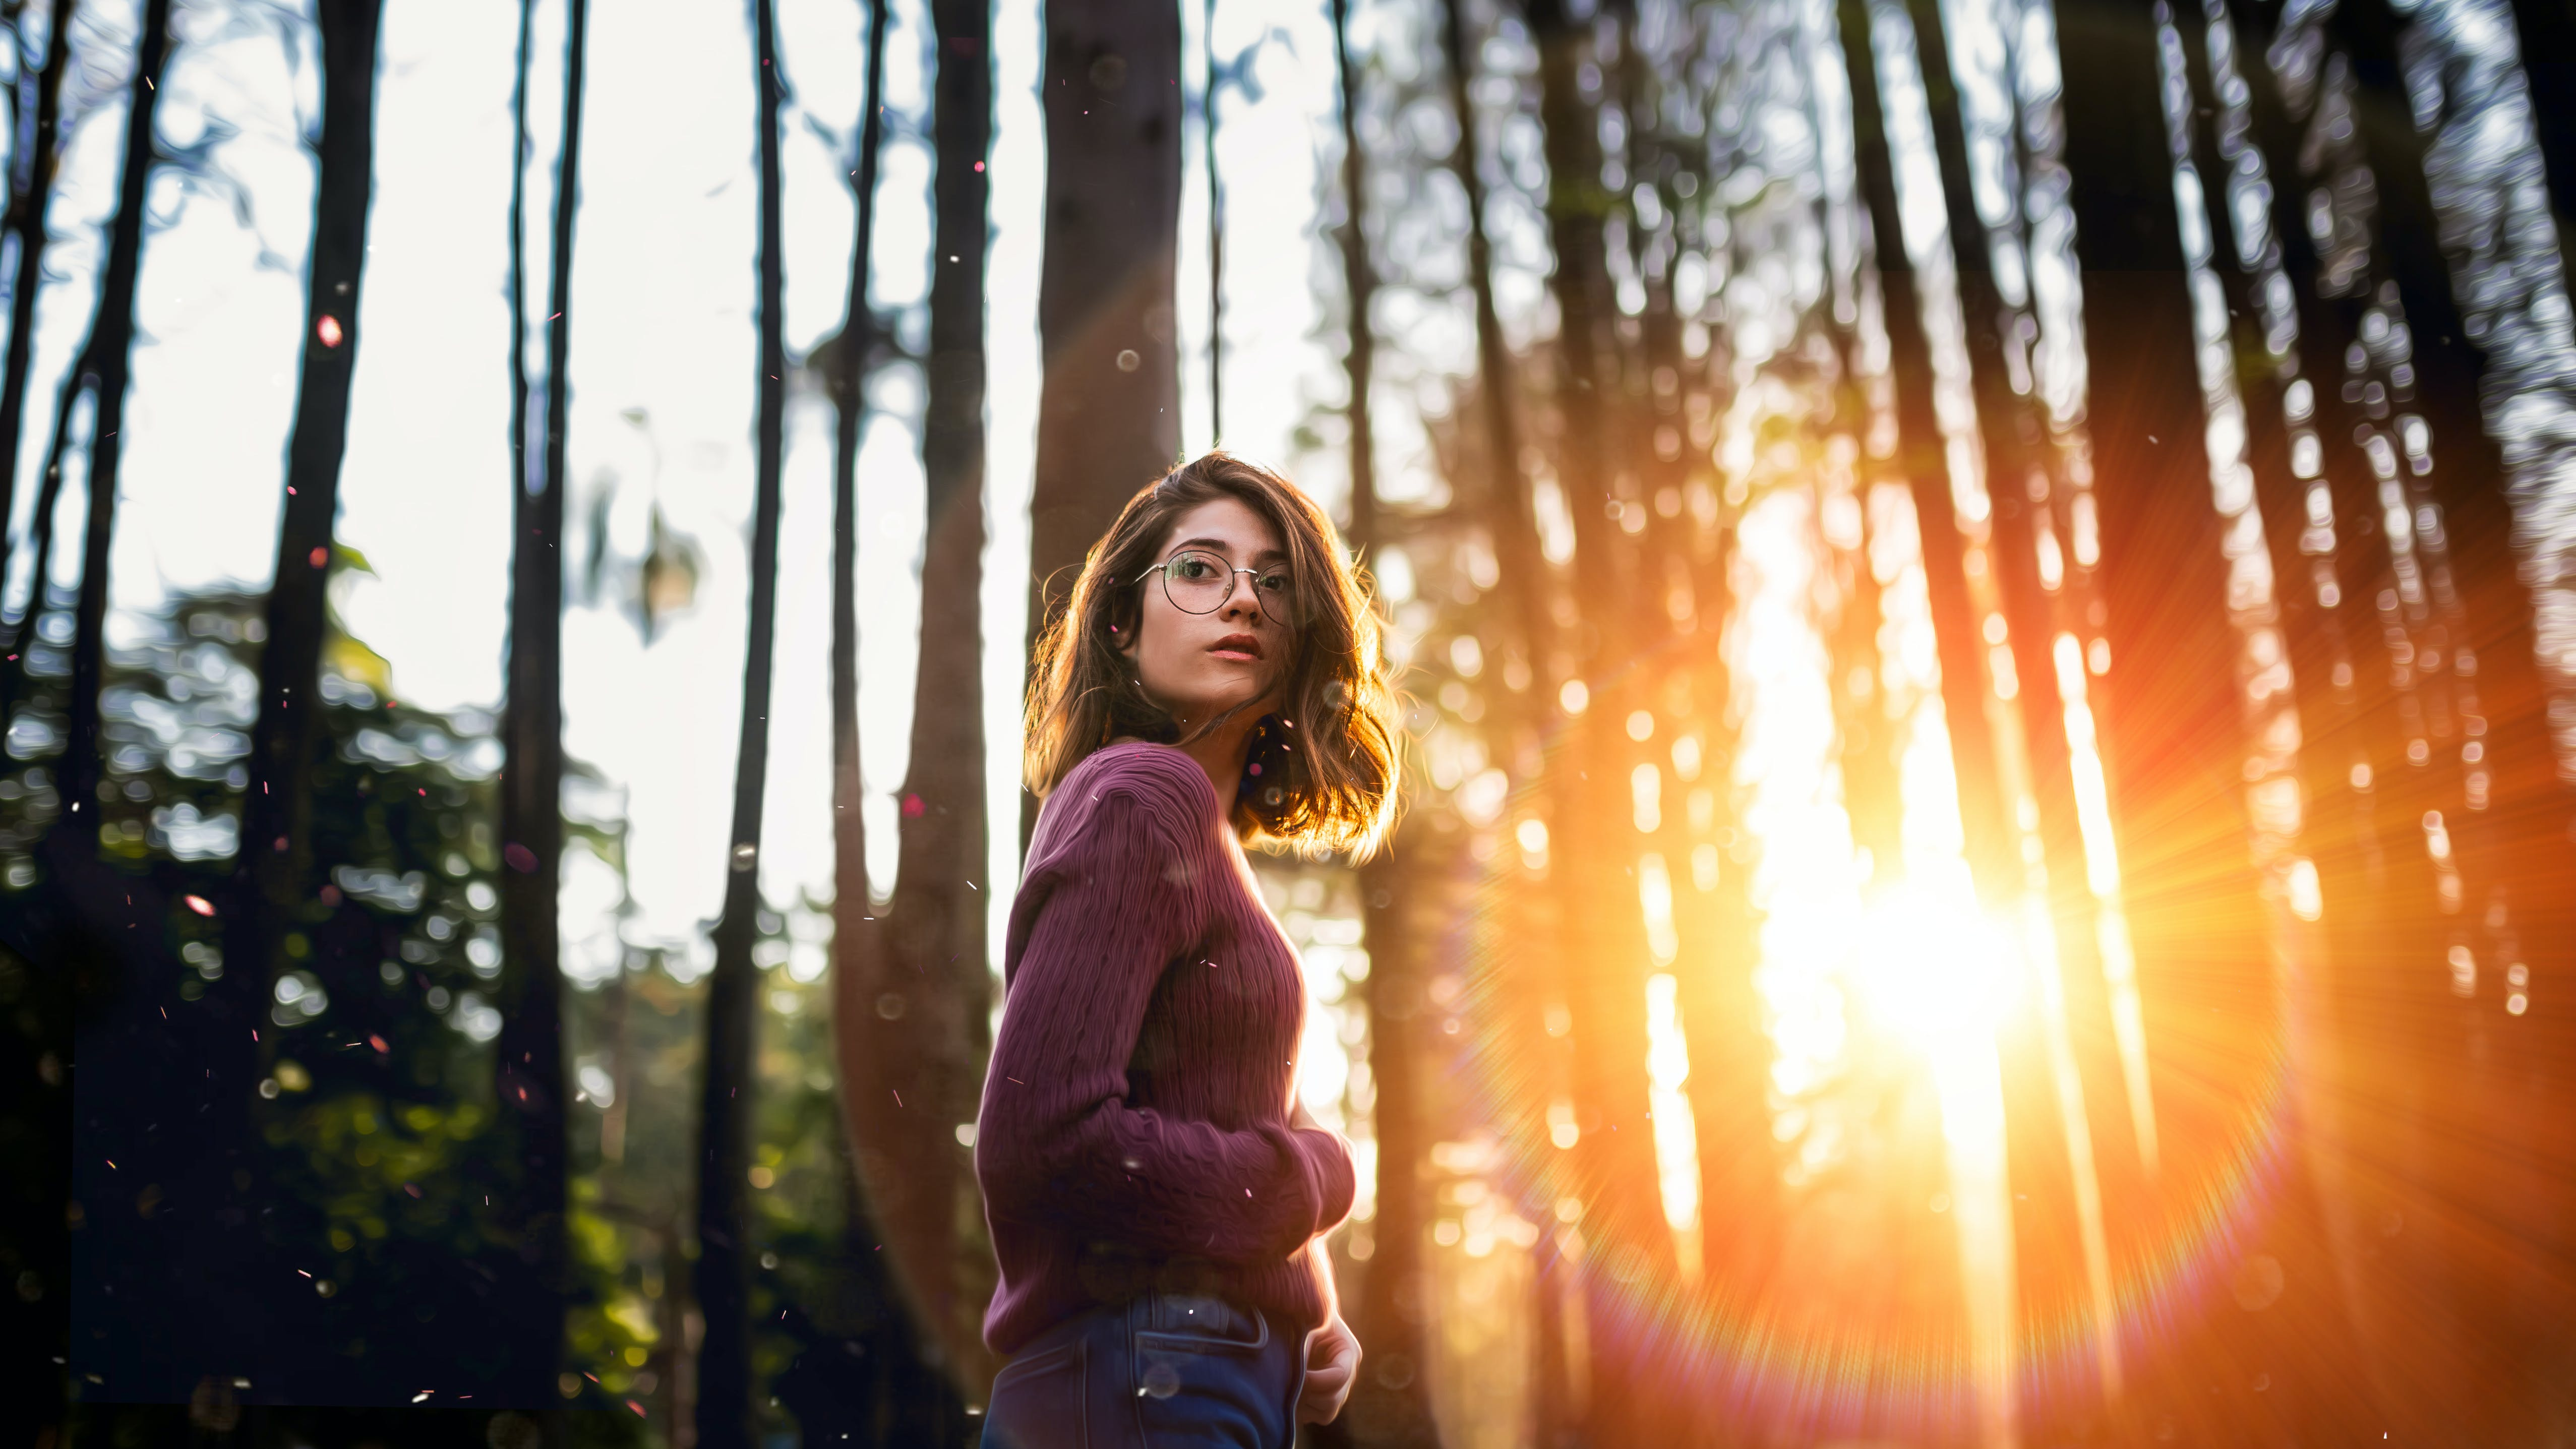 Free stock photo of beautiful girl, cinematic, forest, girl